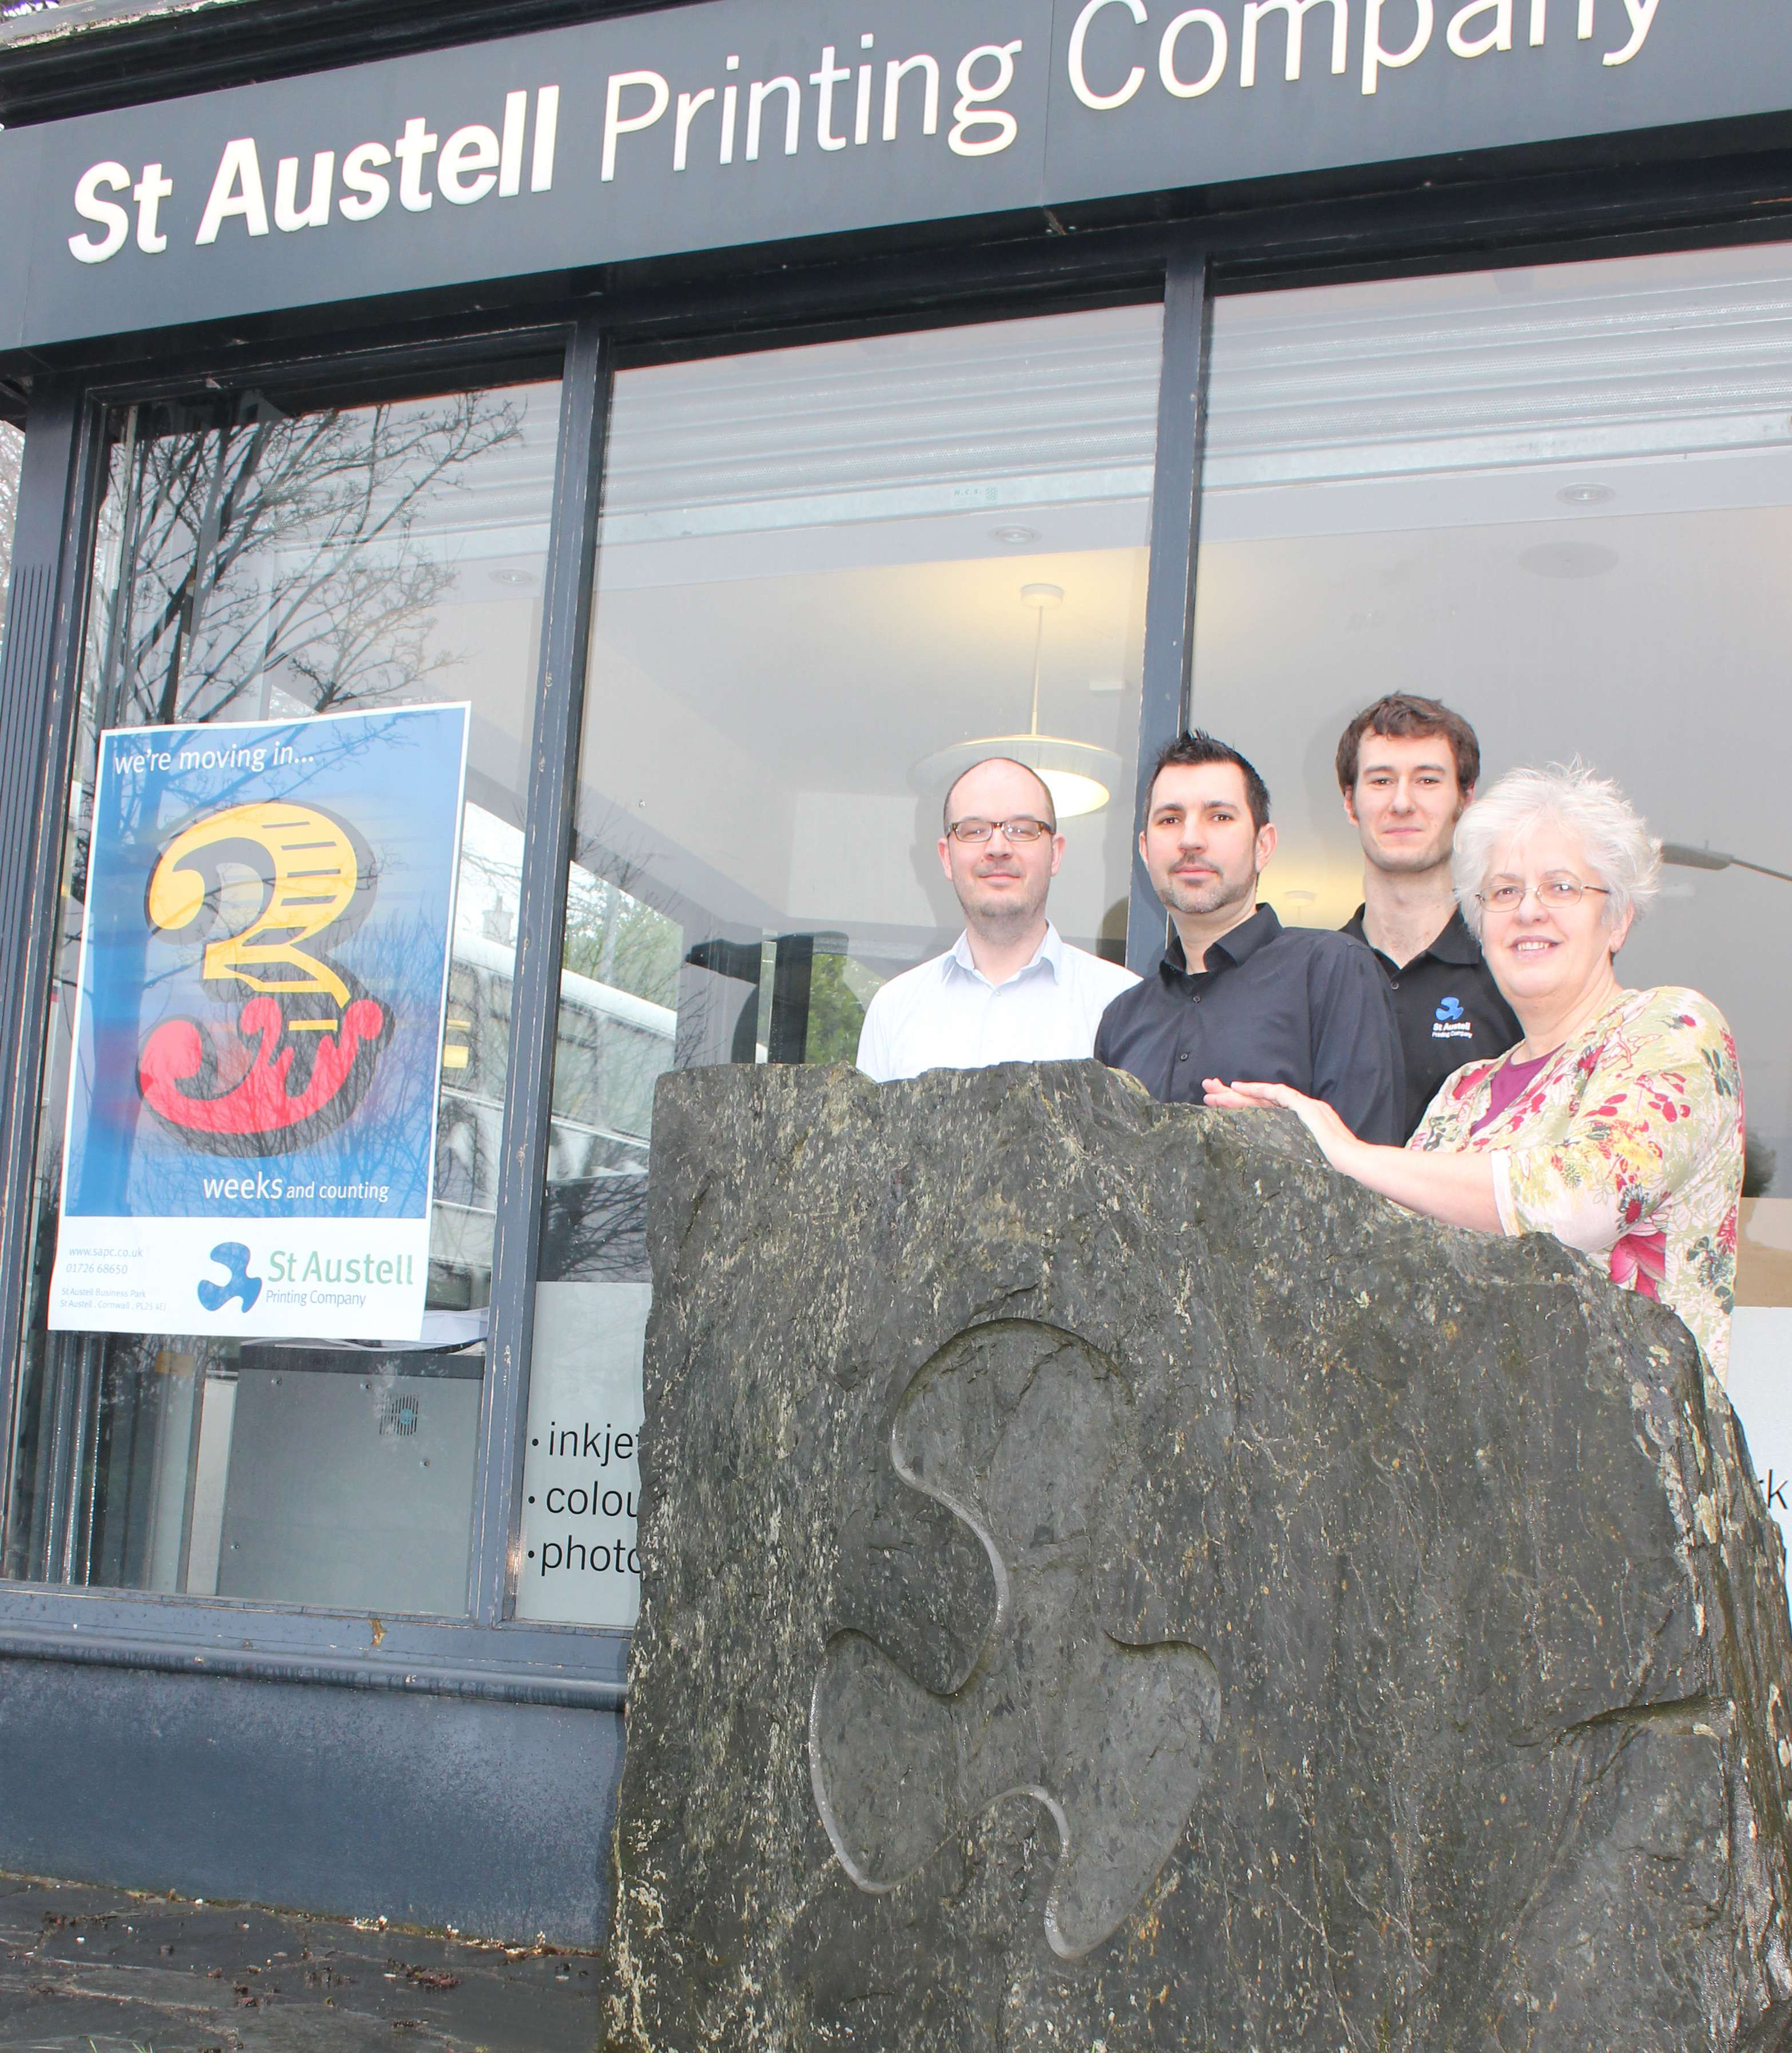 Getting ready for St Austell Printing Company's move are Mark Naylor (Reproduction Department), Ian Dibb (Digital Department), Dan Ferguson Smith (Print Department) and Mary Allen (Accounts Department)